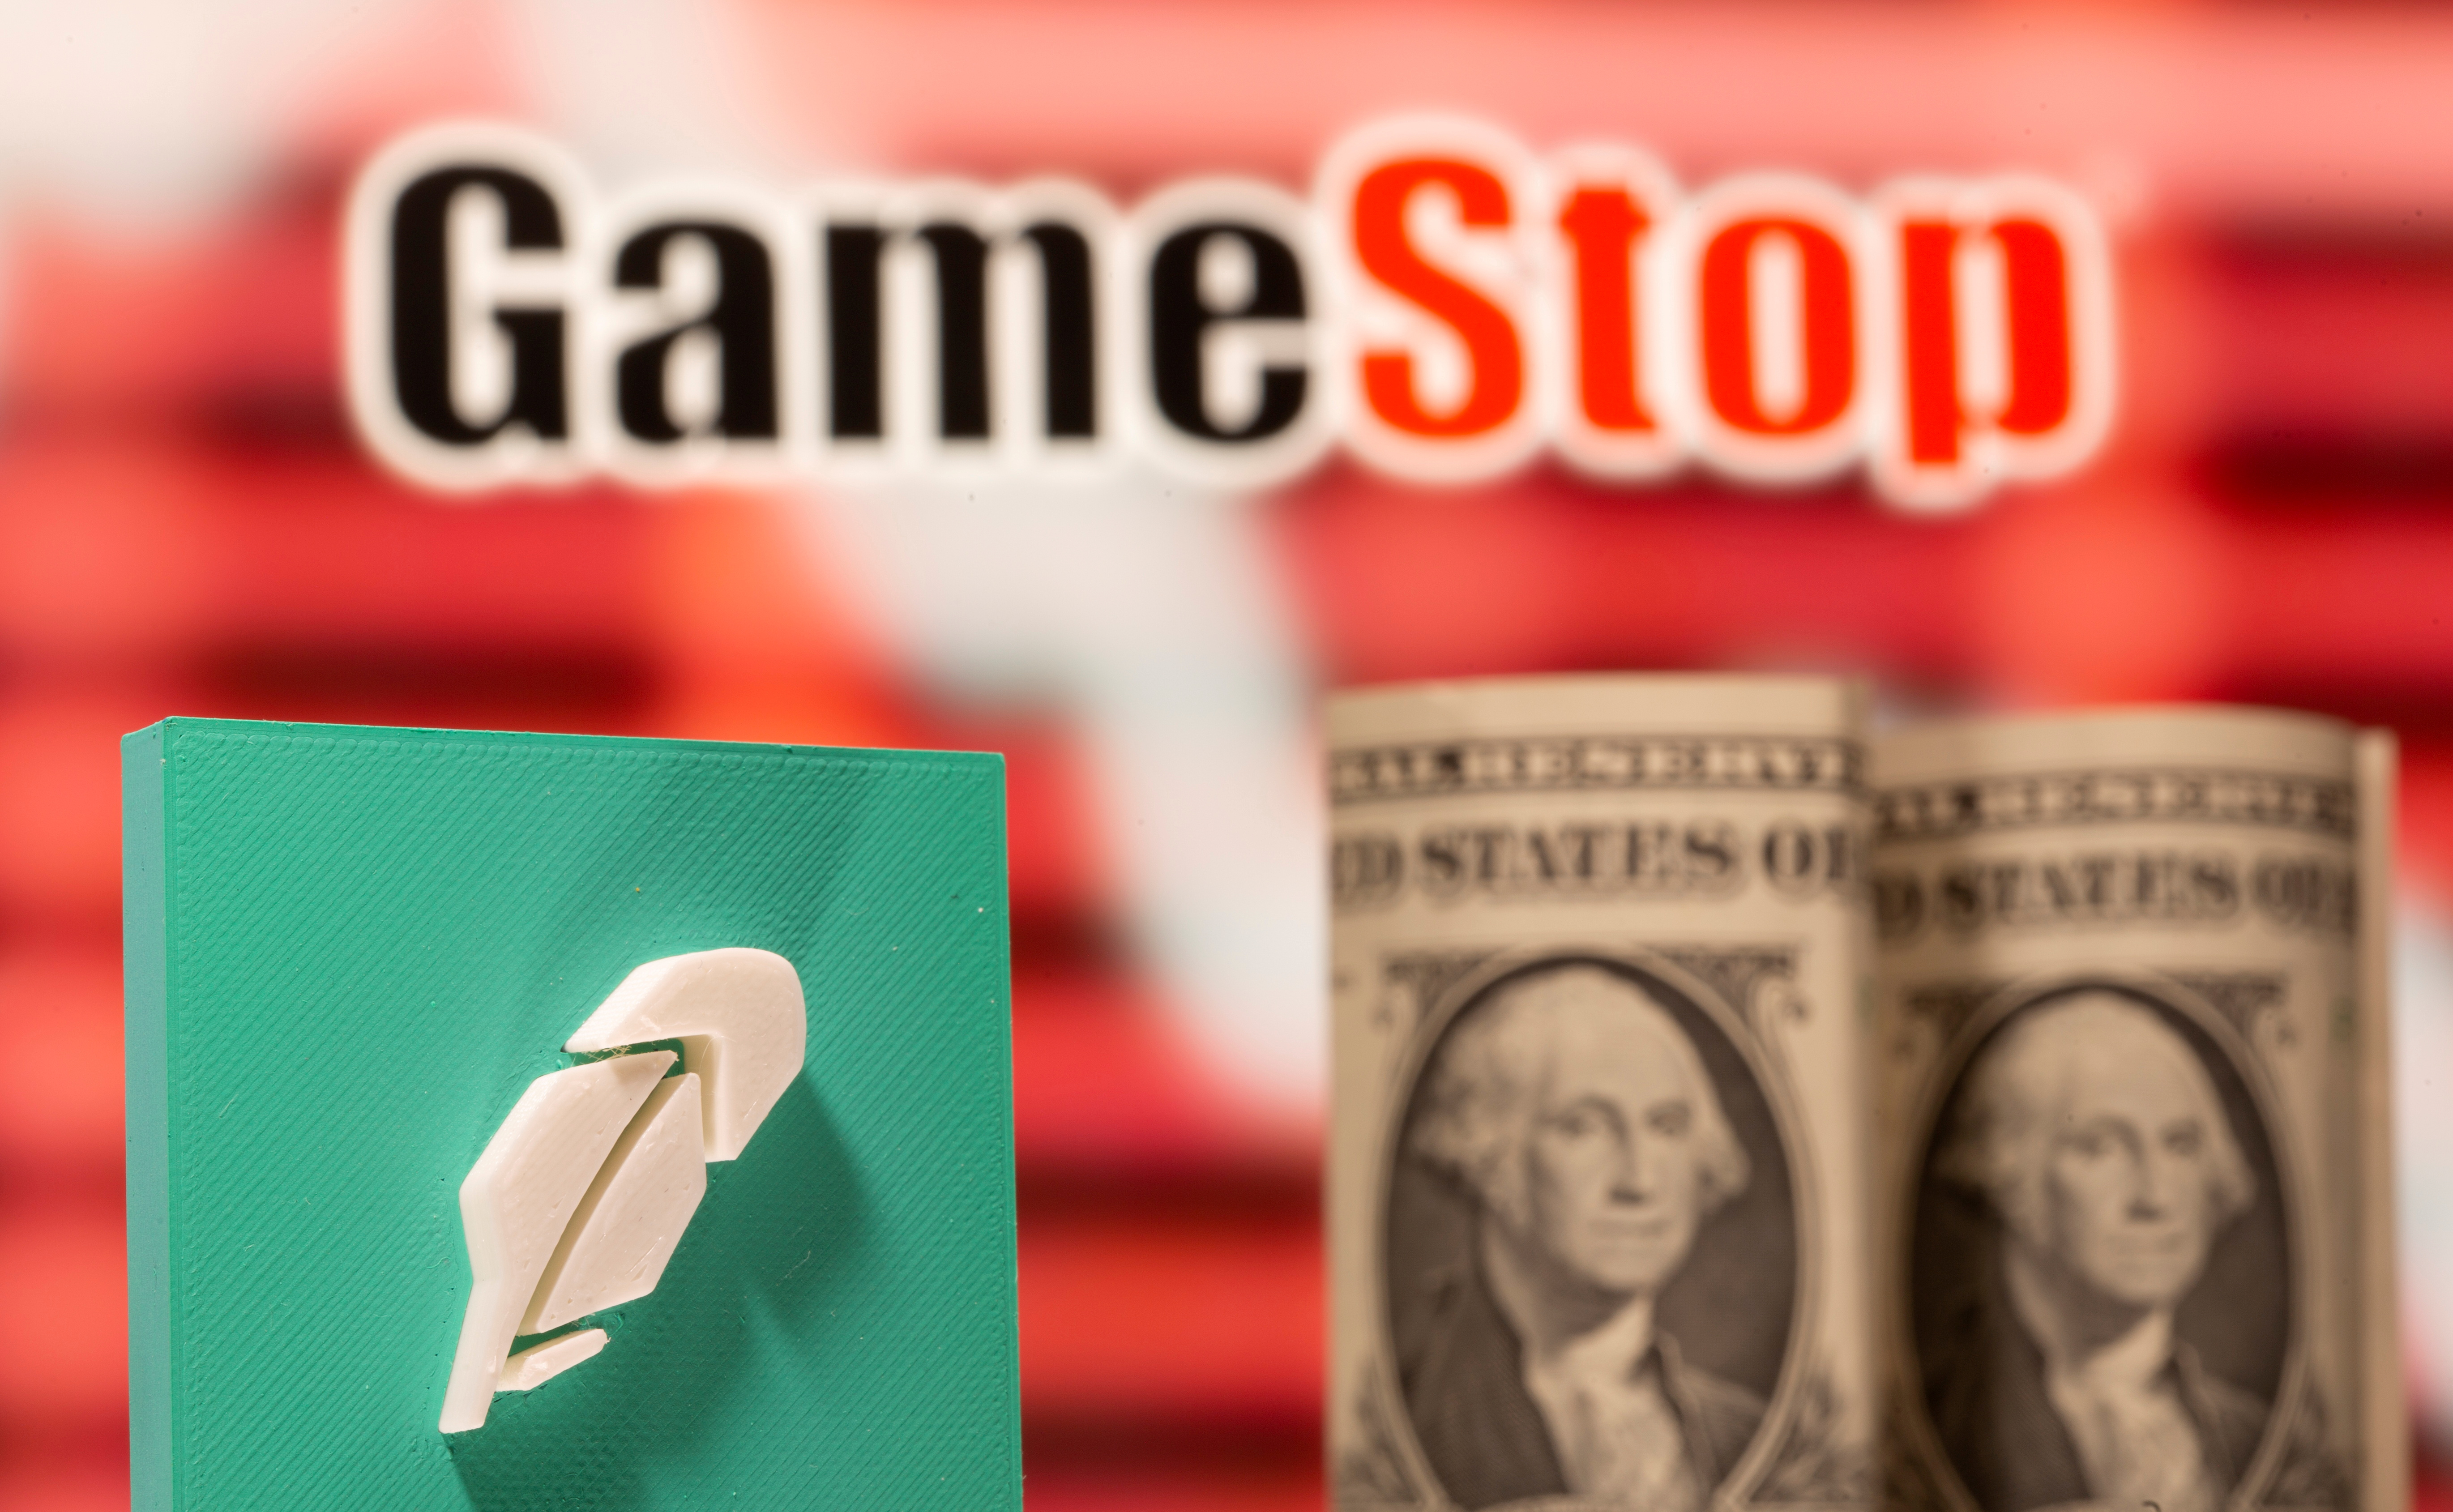 A 3d printed Robinhood logo and one dollar banknotes are seen in front of displayed GameStop logo in this illustration taken February 8, 2021. REUTERS/Dado Ruvic/Illustration